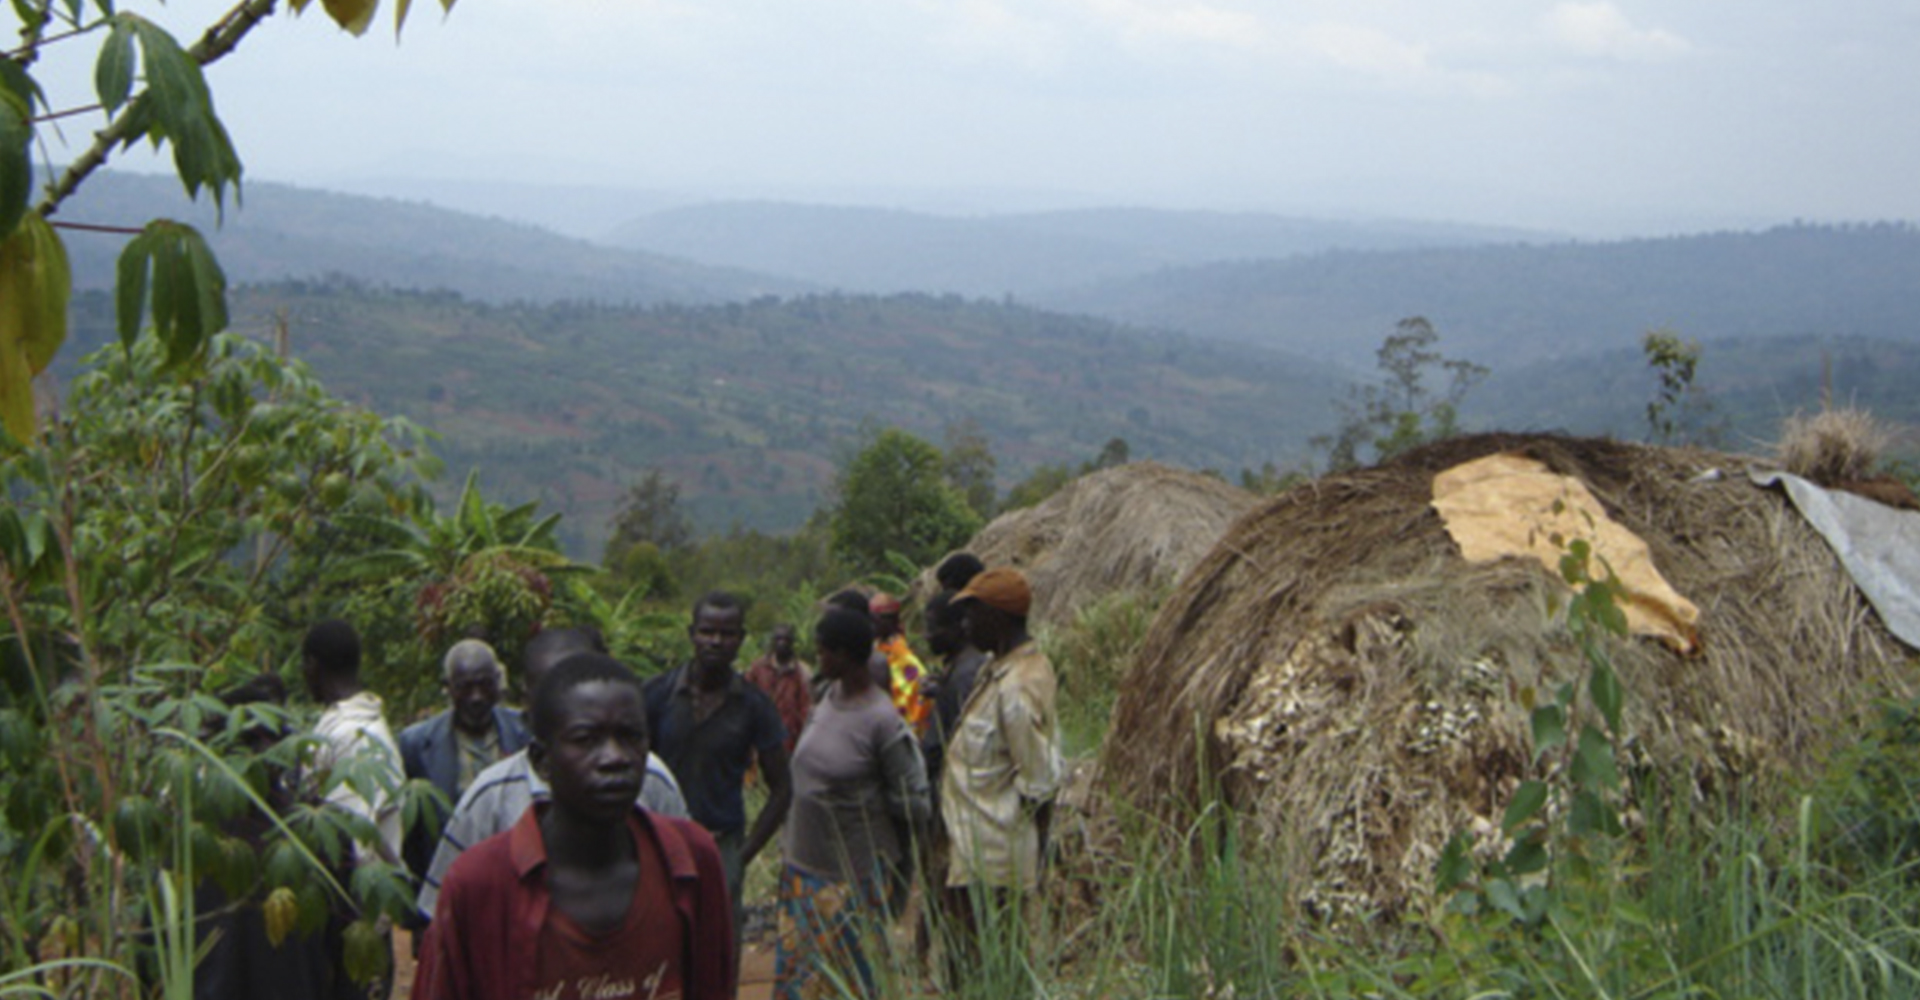 Indigenous peoples in Burundi